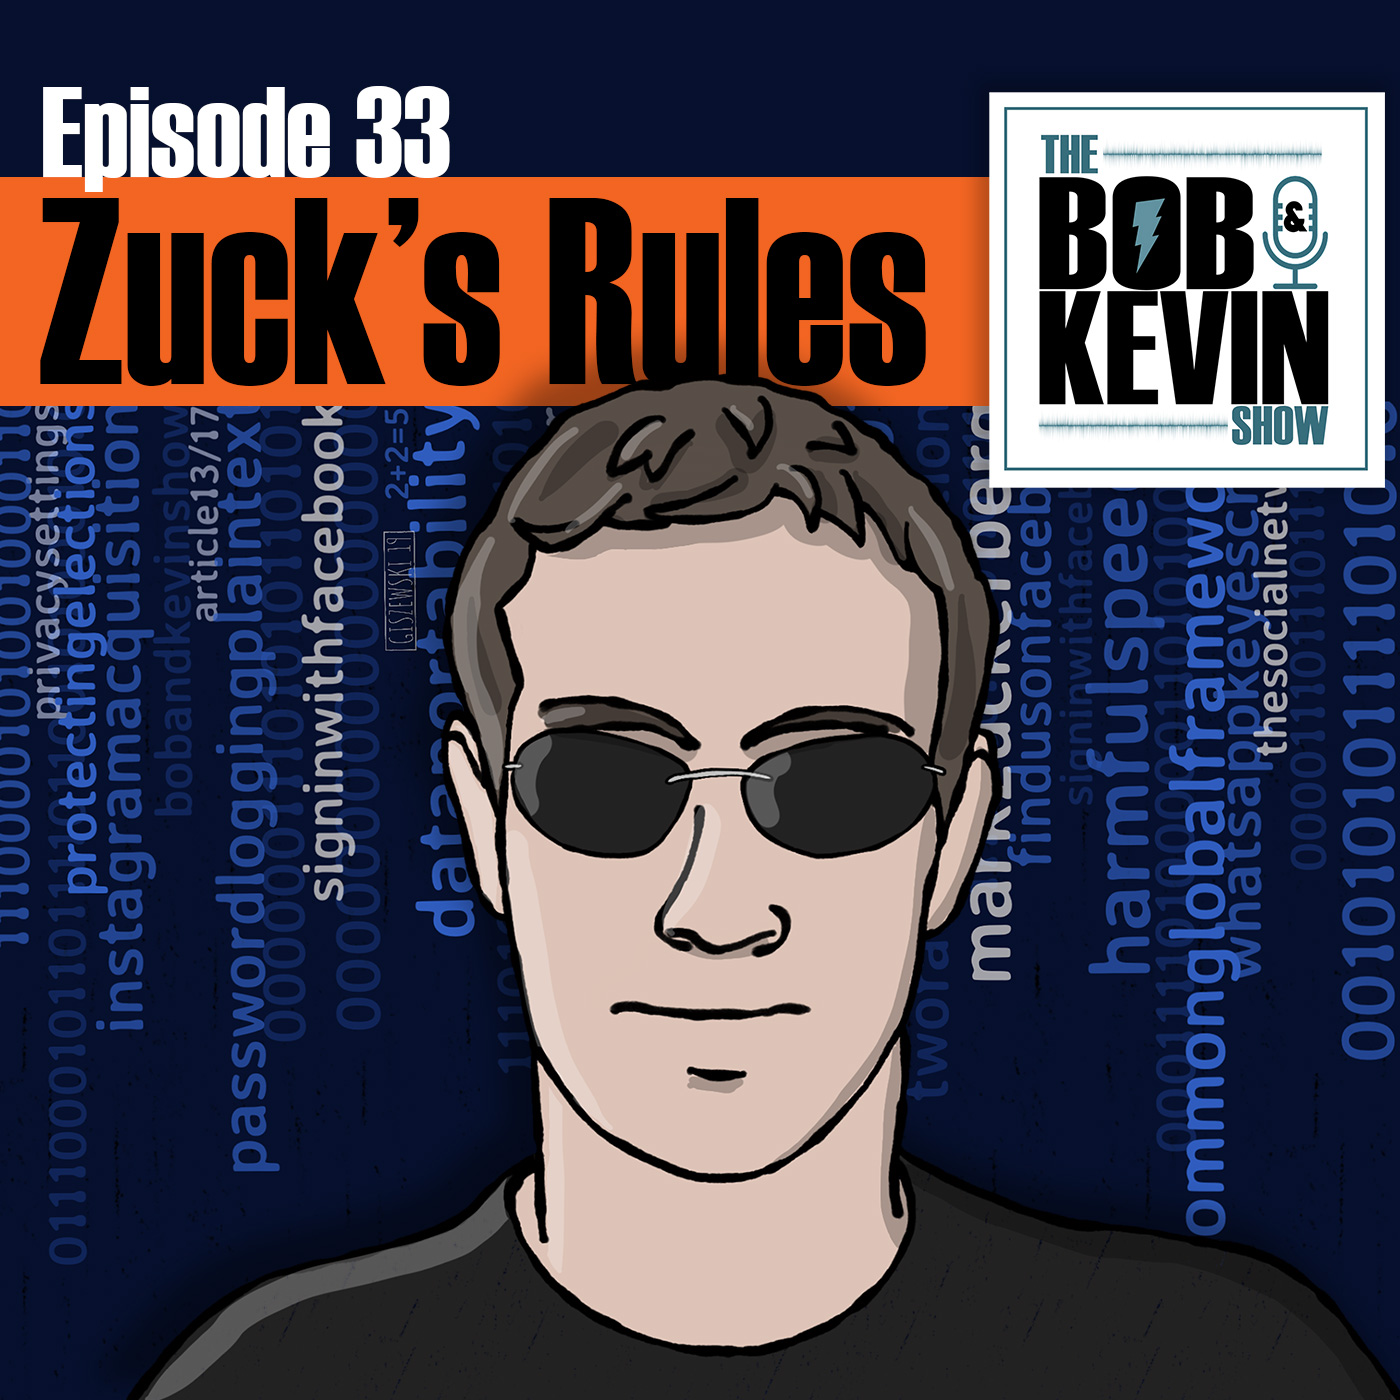 Ep. 033 - Mark Zuckerberg Wants More Internet Regulation and Article 13 is now Article 17?